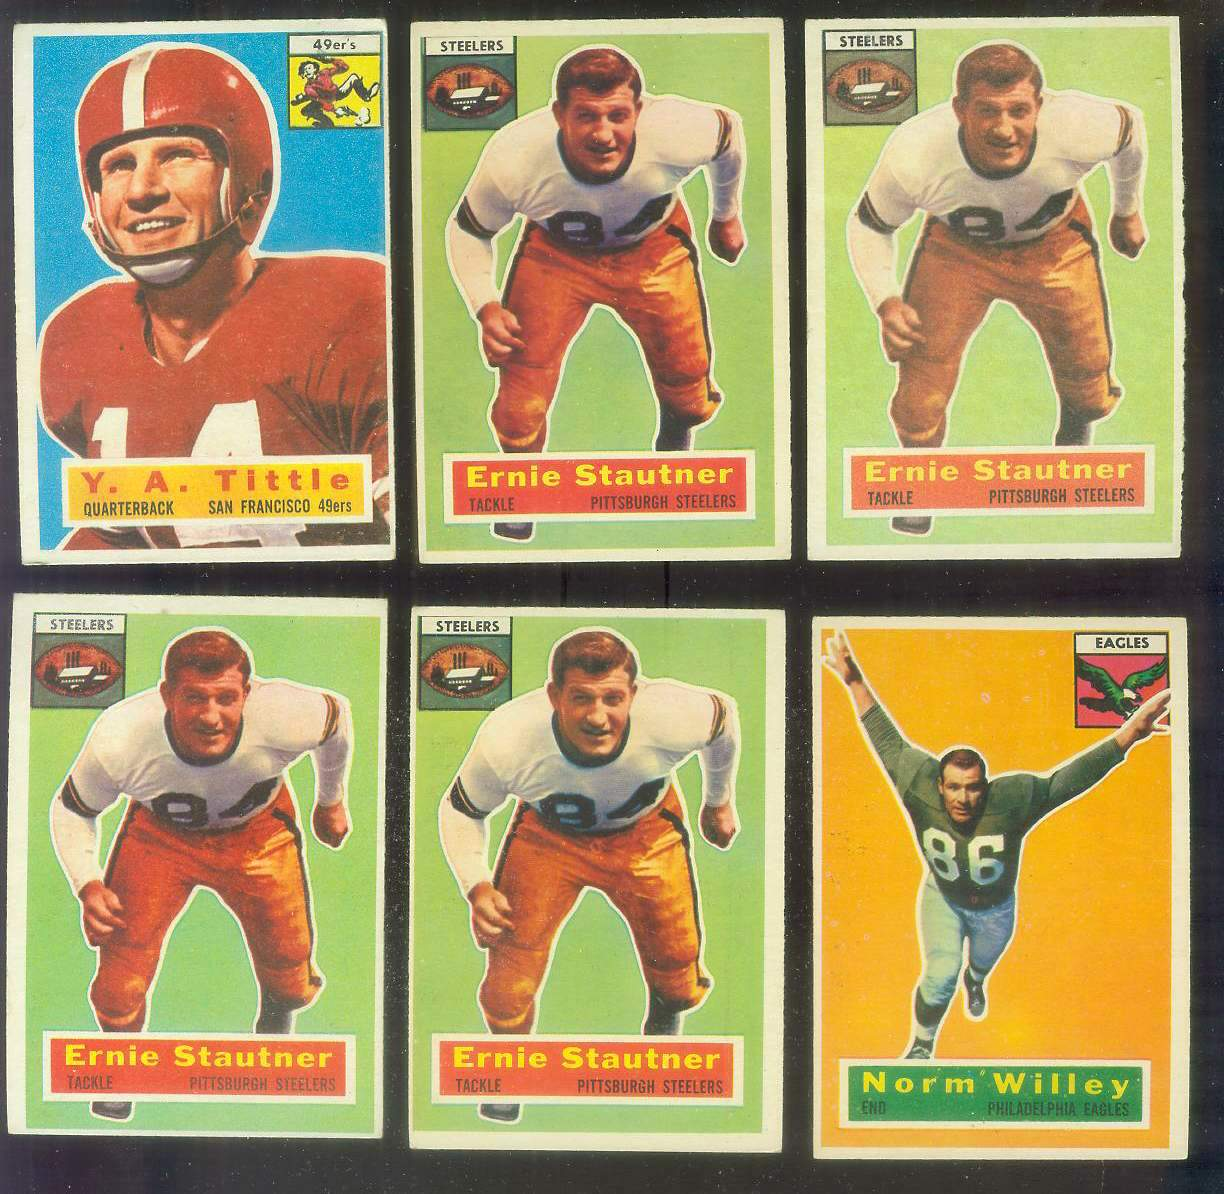 1956 Topps FB #.87 Ernie Stautner (Steelers) Football cards value